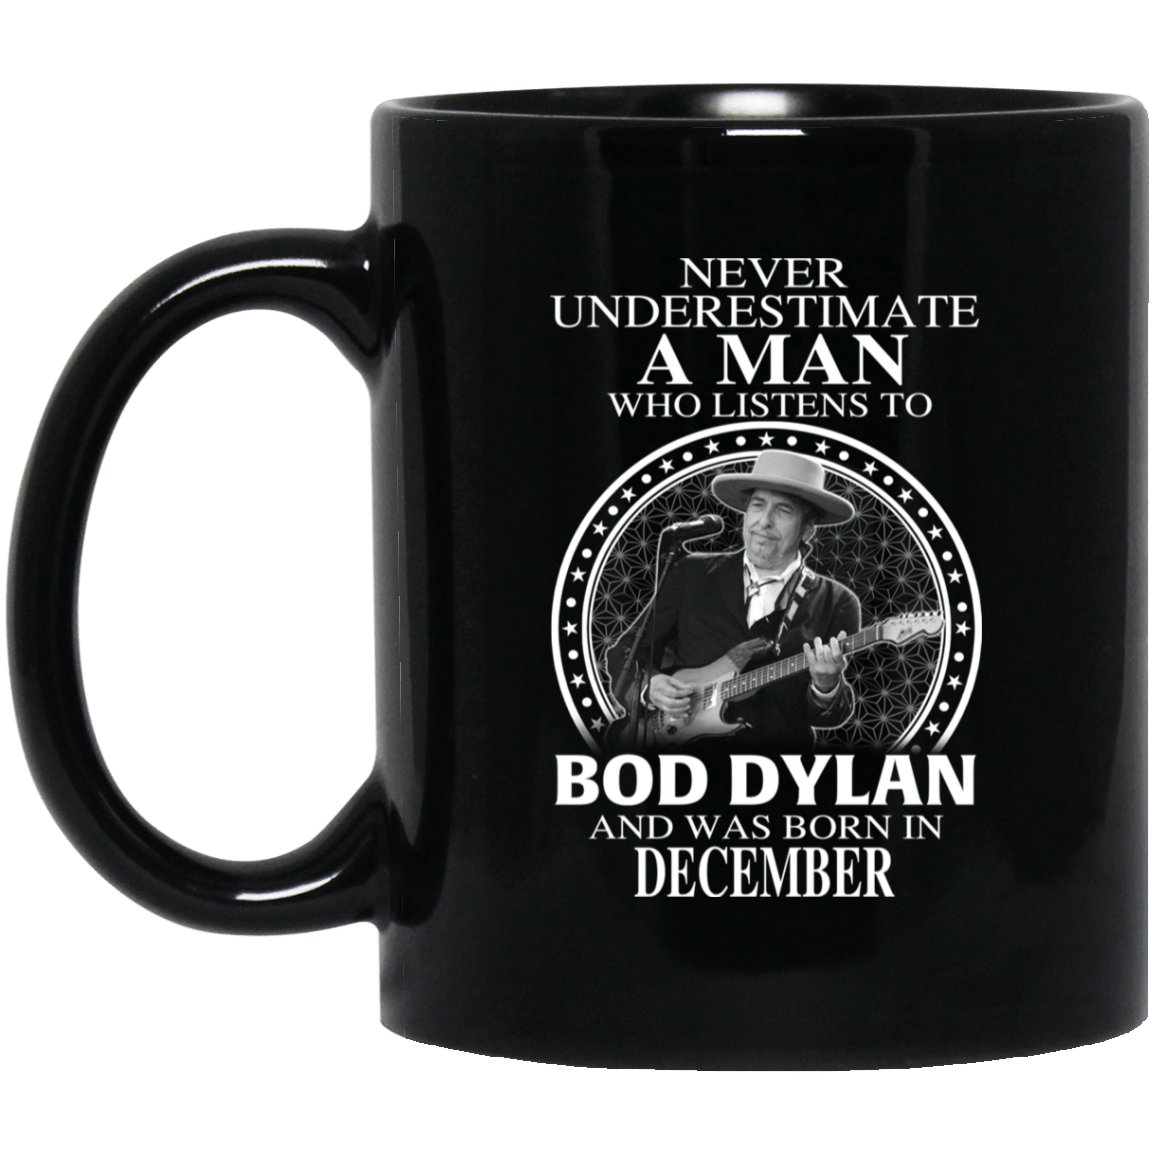 A Man Who Listens To Bob Dylan And Was Born In December Mug 1065-10181-76153611-49307 - Tee Ript